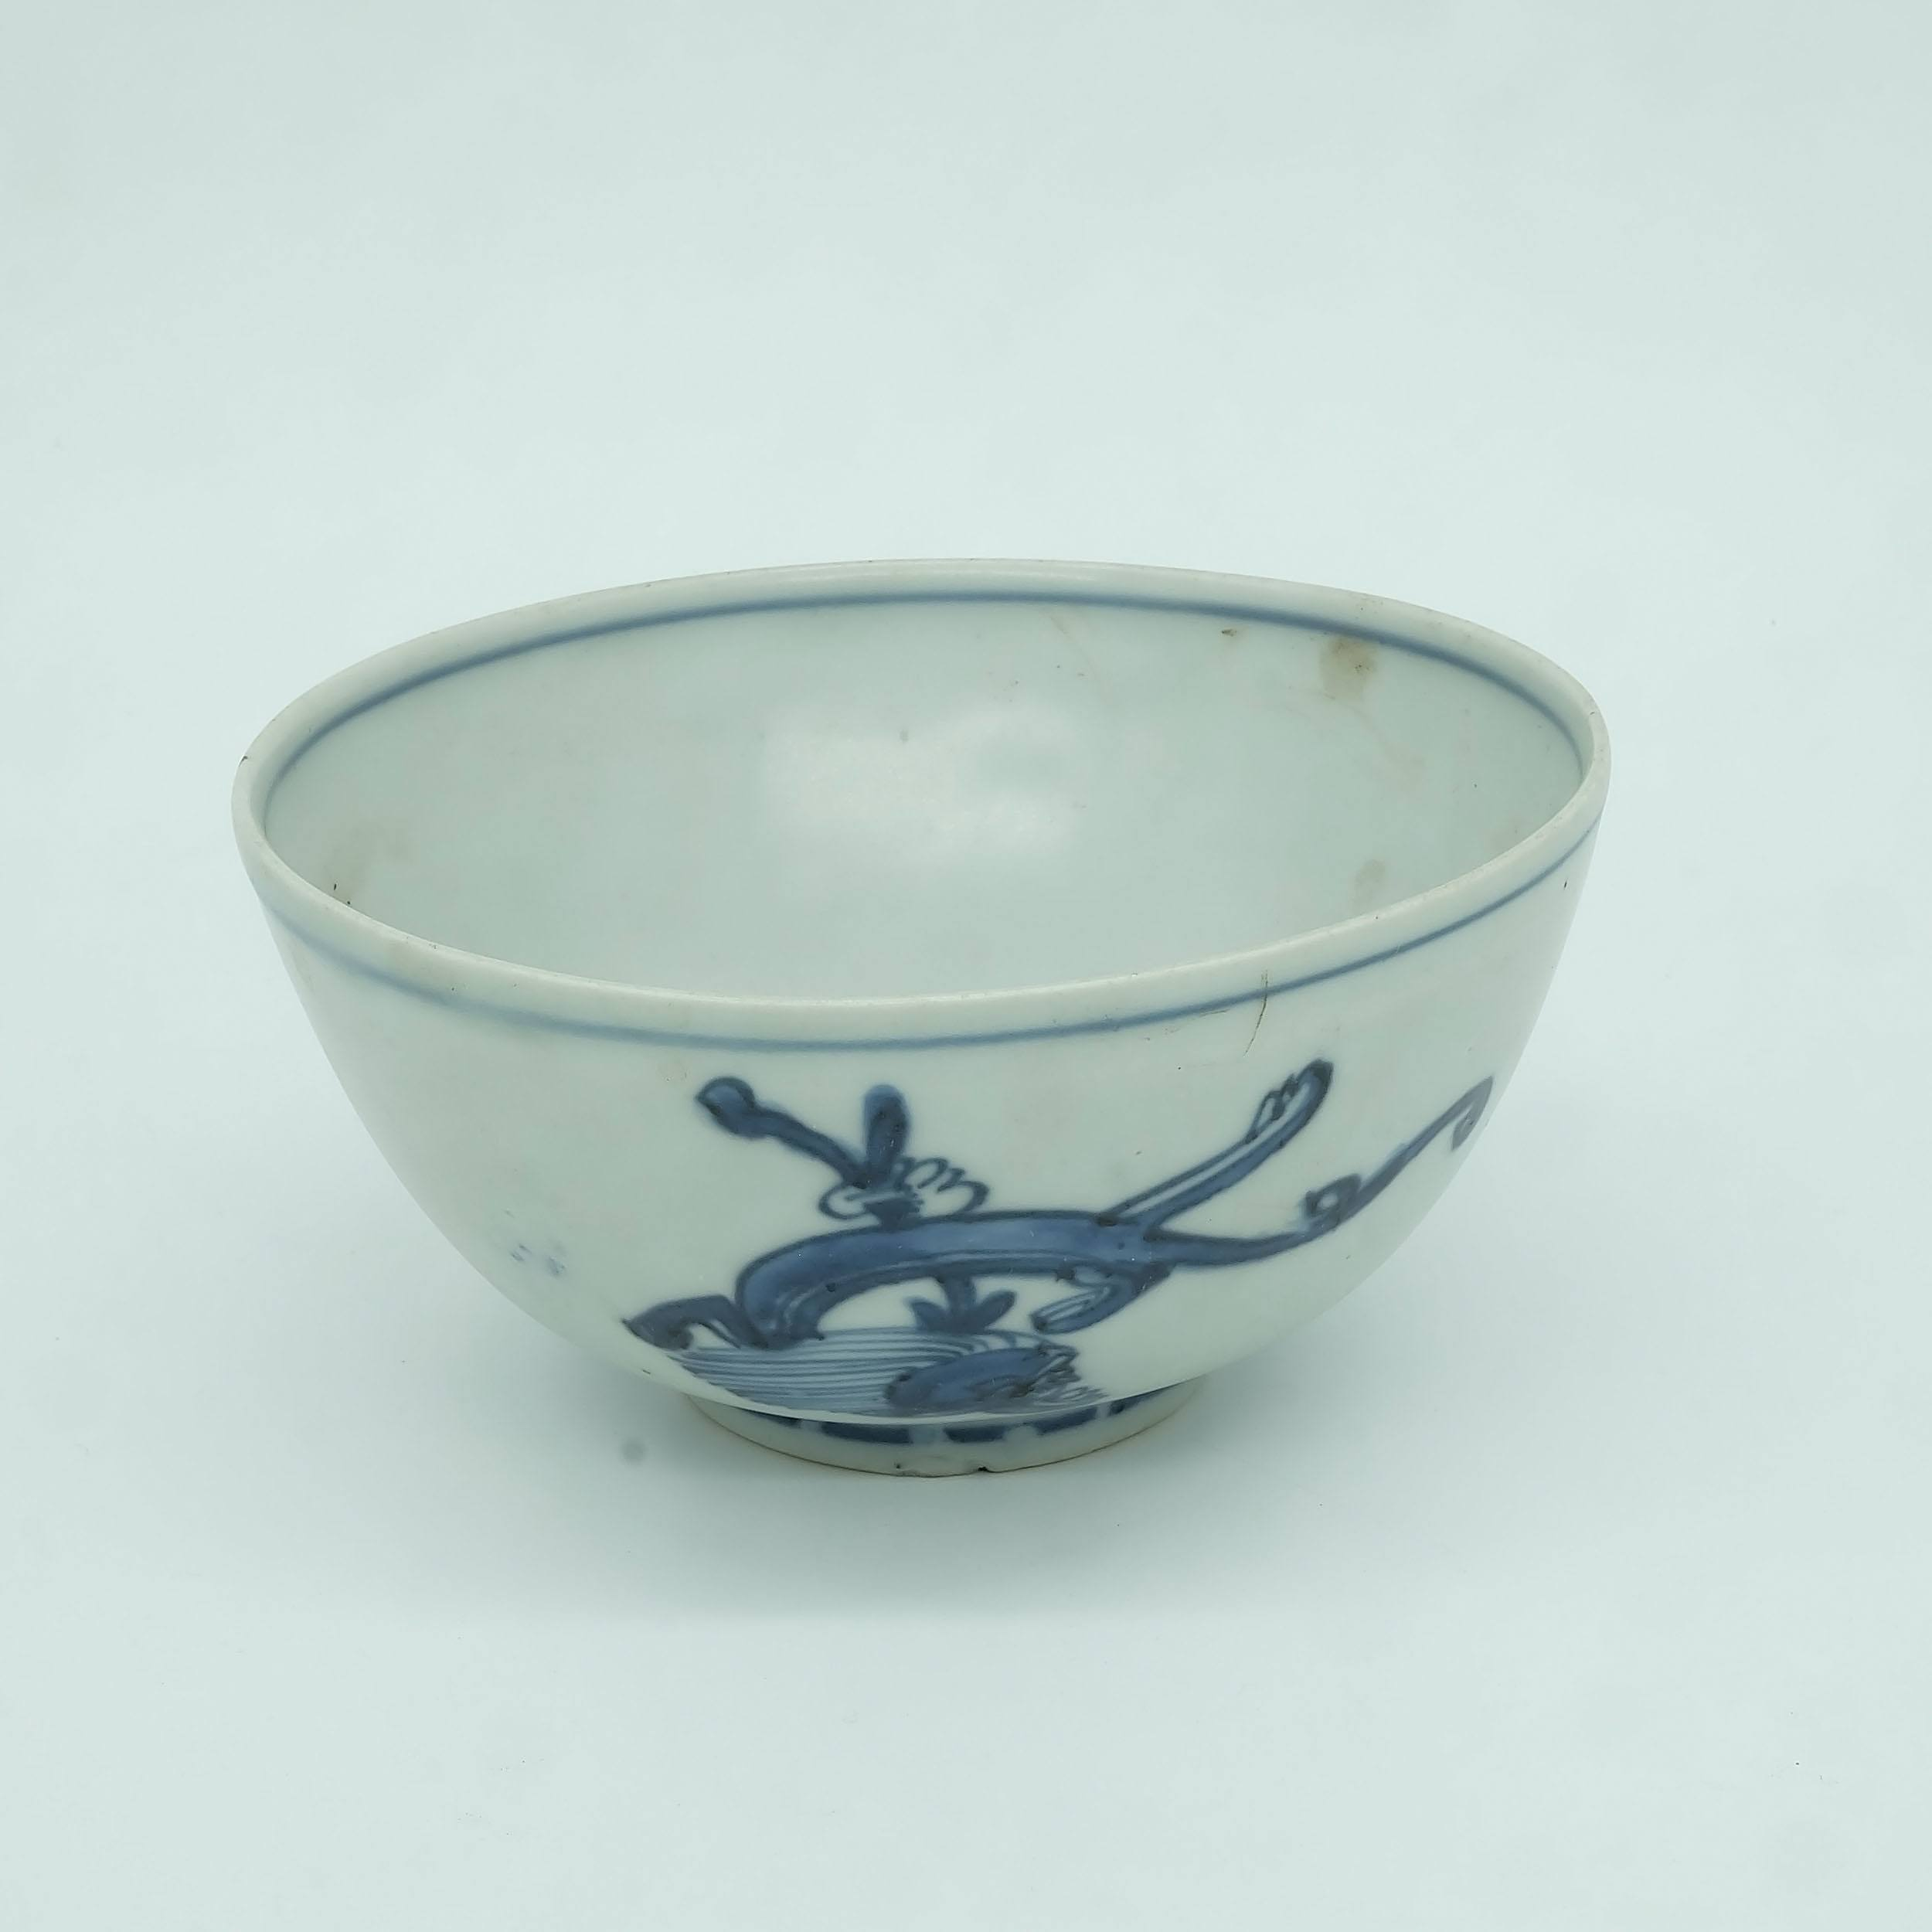 'Chinese Late Ming Blue and White Dragon Bowl, Late 16th to Early 17th Century'